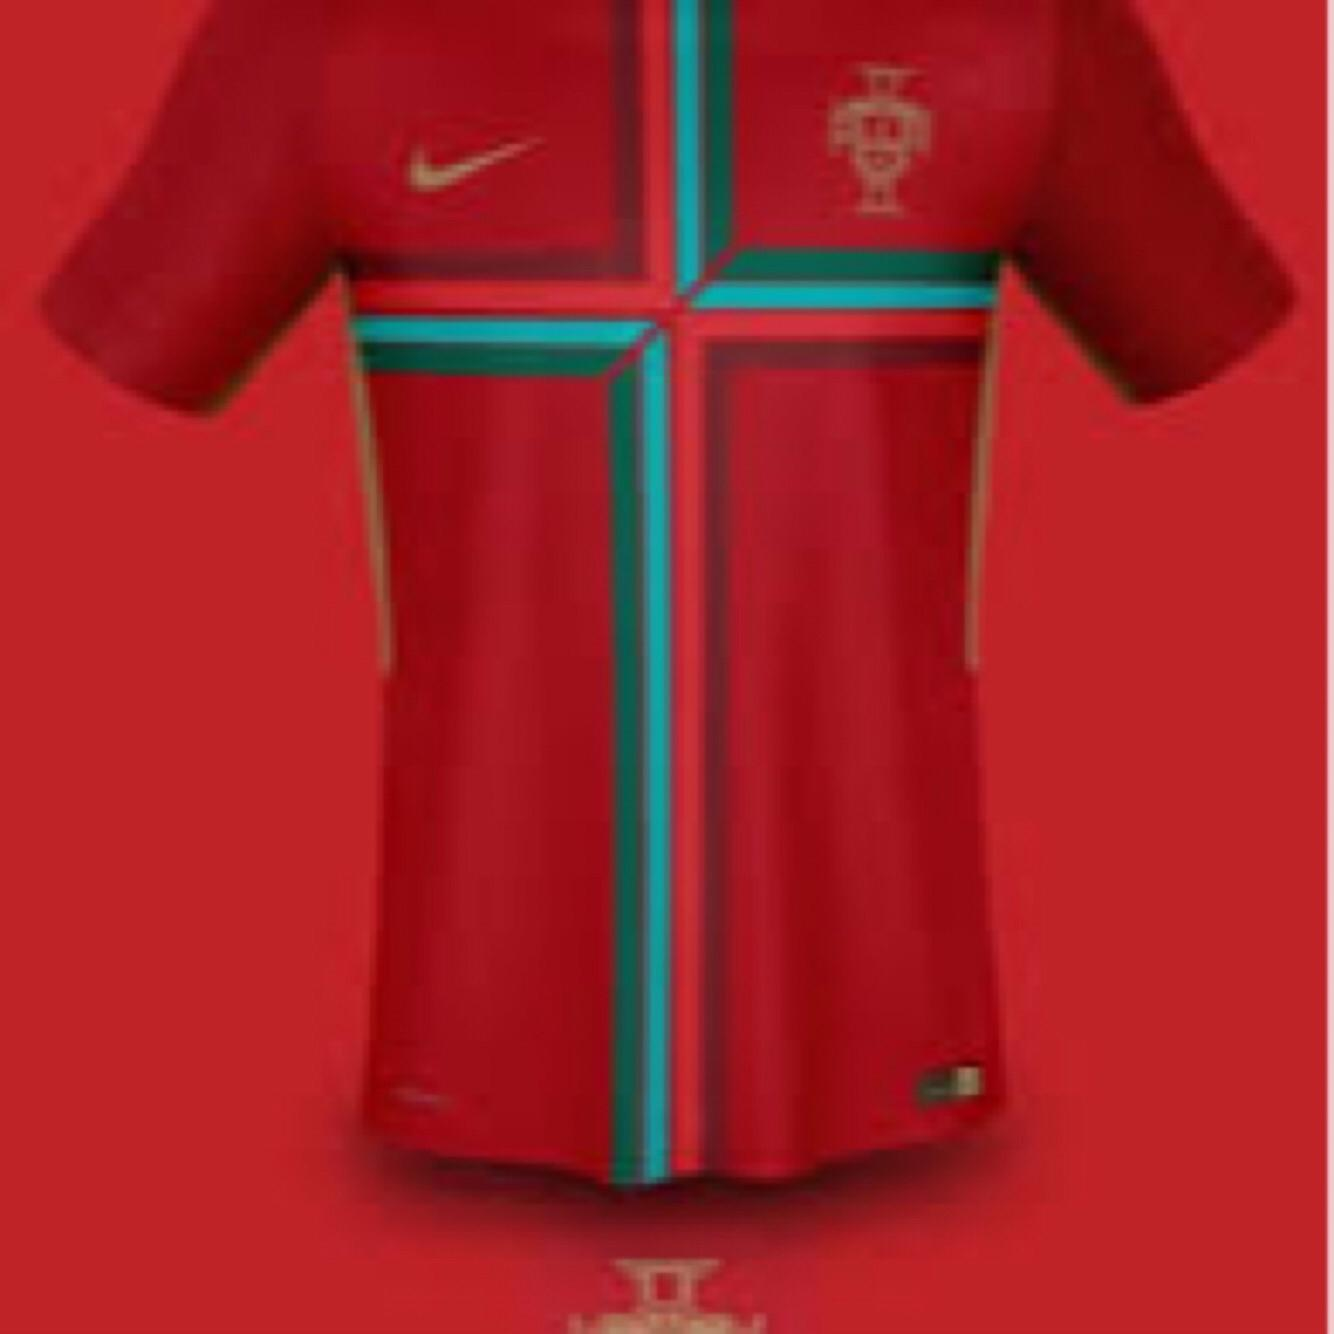 JERSEY PORTUGAL 3rd WORLD CUP 2018 - JERSEY BOLA TIMNAS PORTUGAL PIALA DUNIA 2018